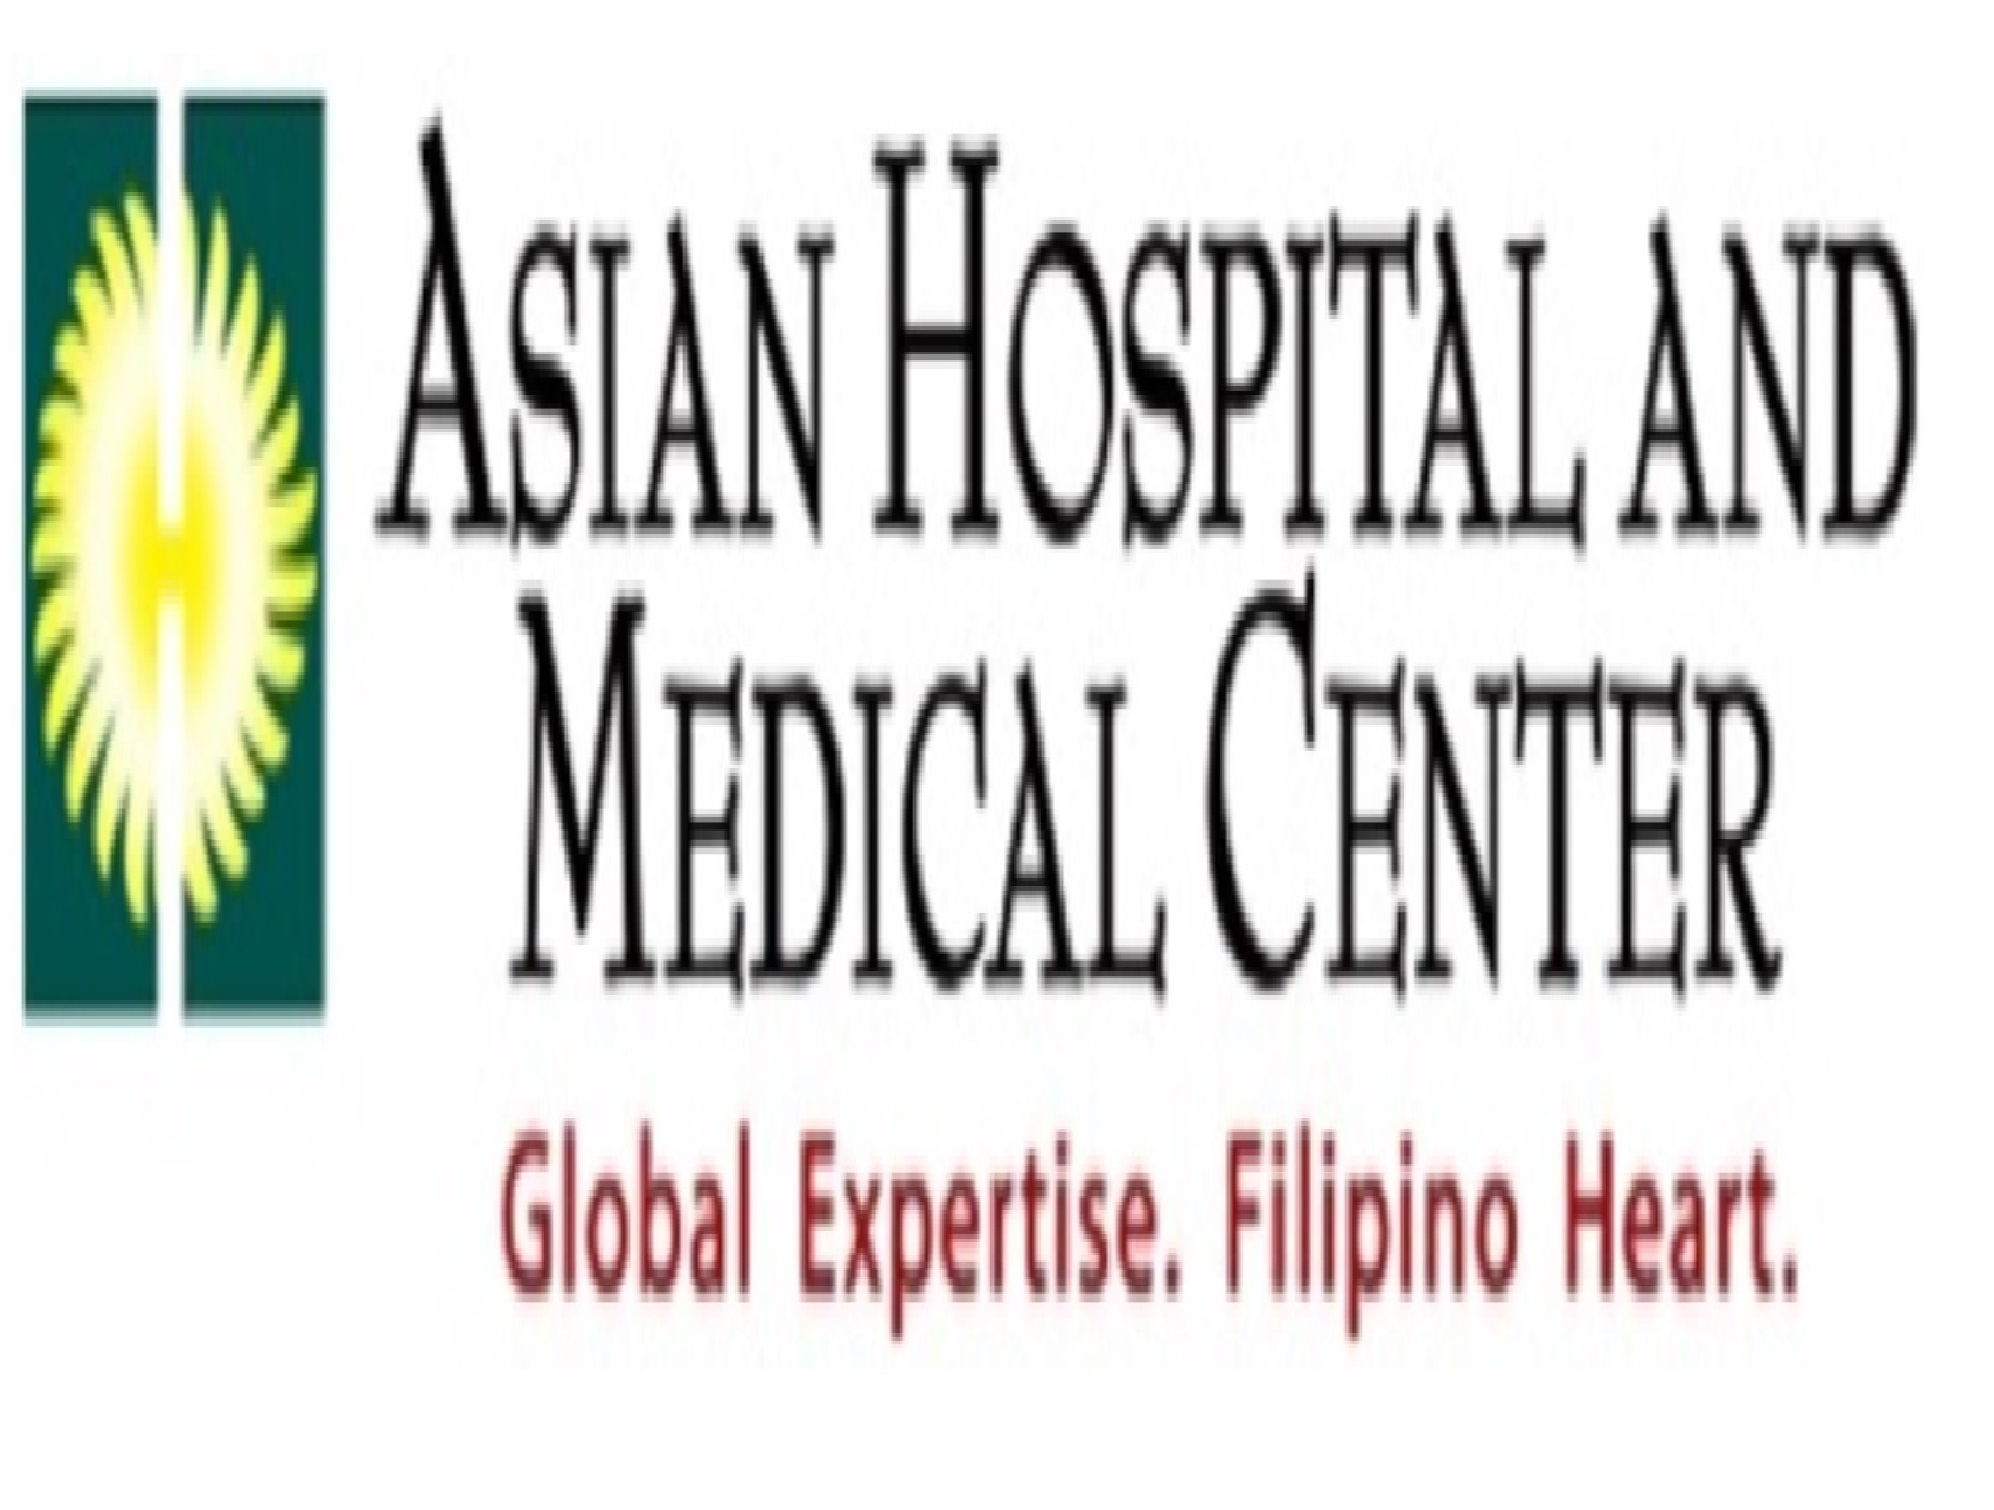 Asian Hospital and Medical Center - View Doctors, Contact